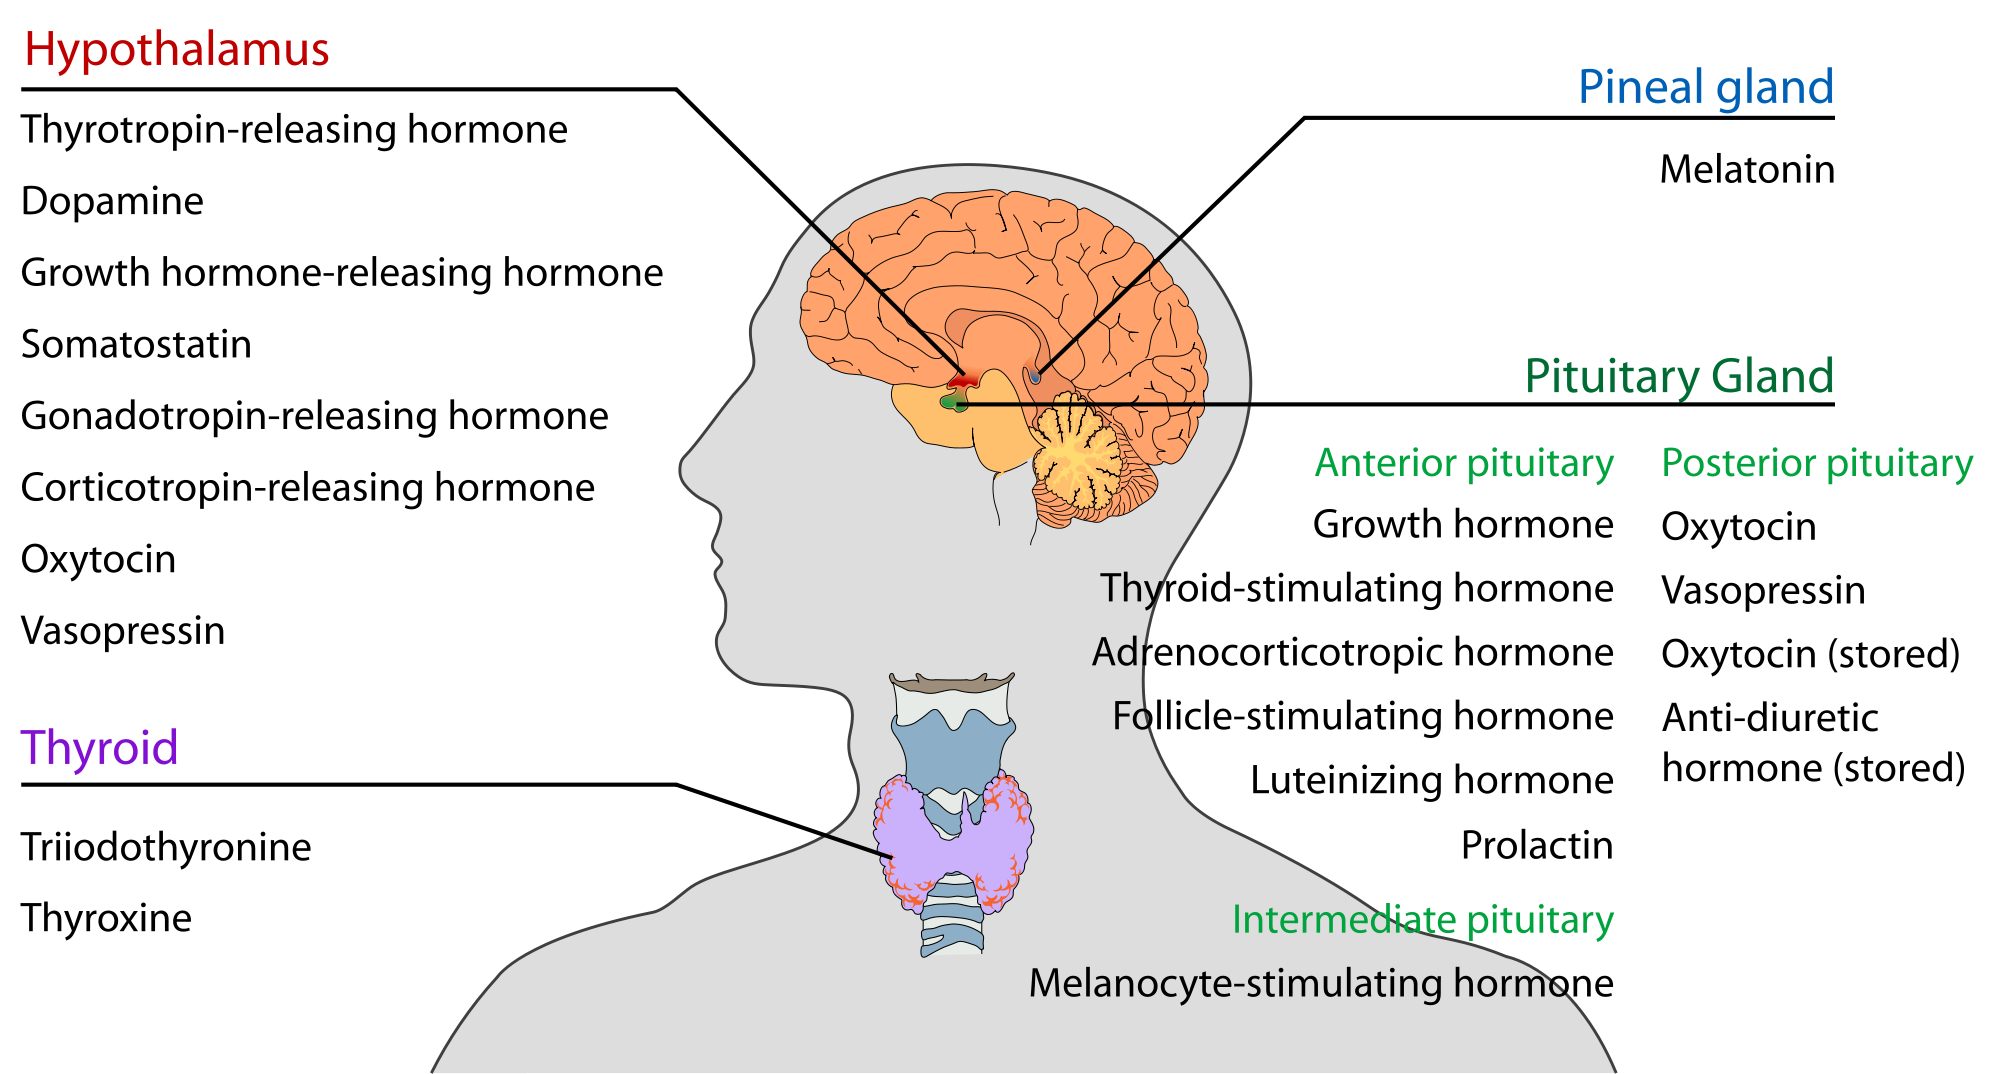 The endocrine system of the head and neck | Anatomy of the the ...